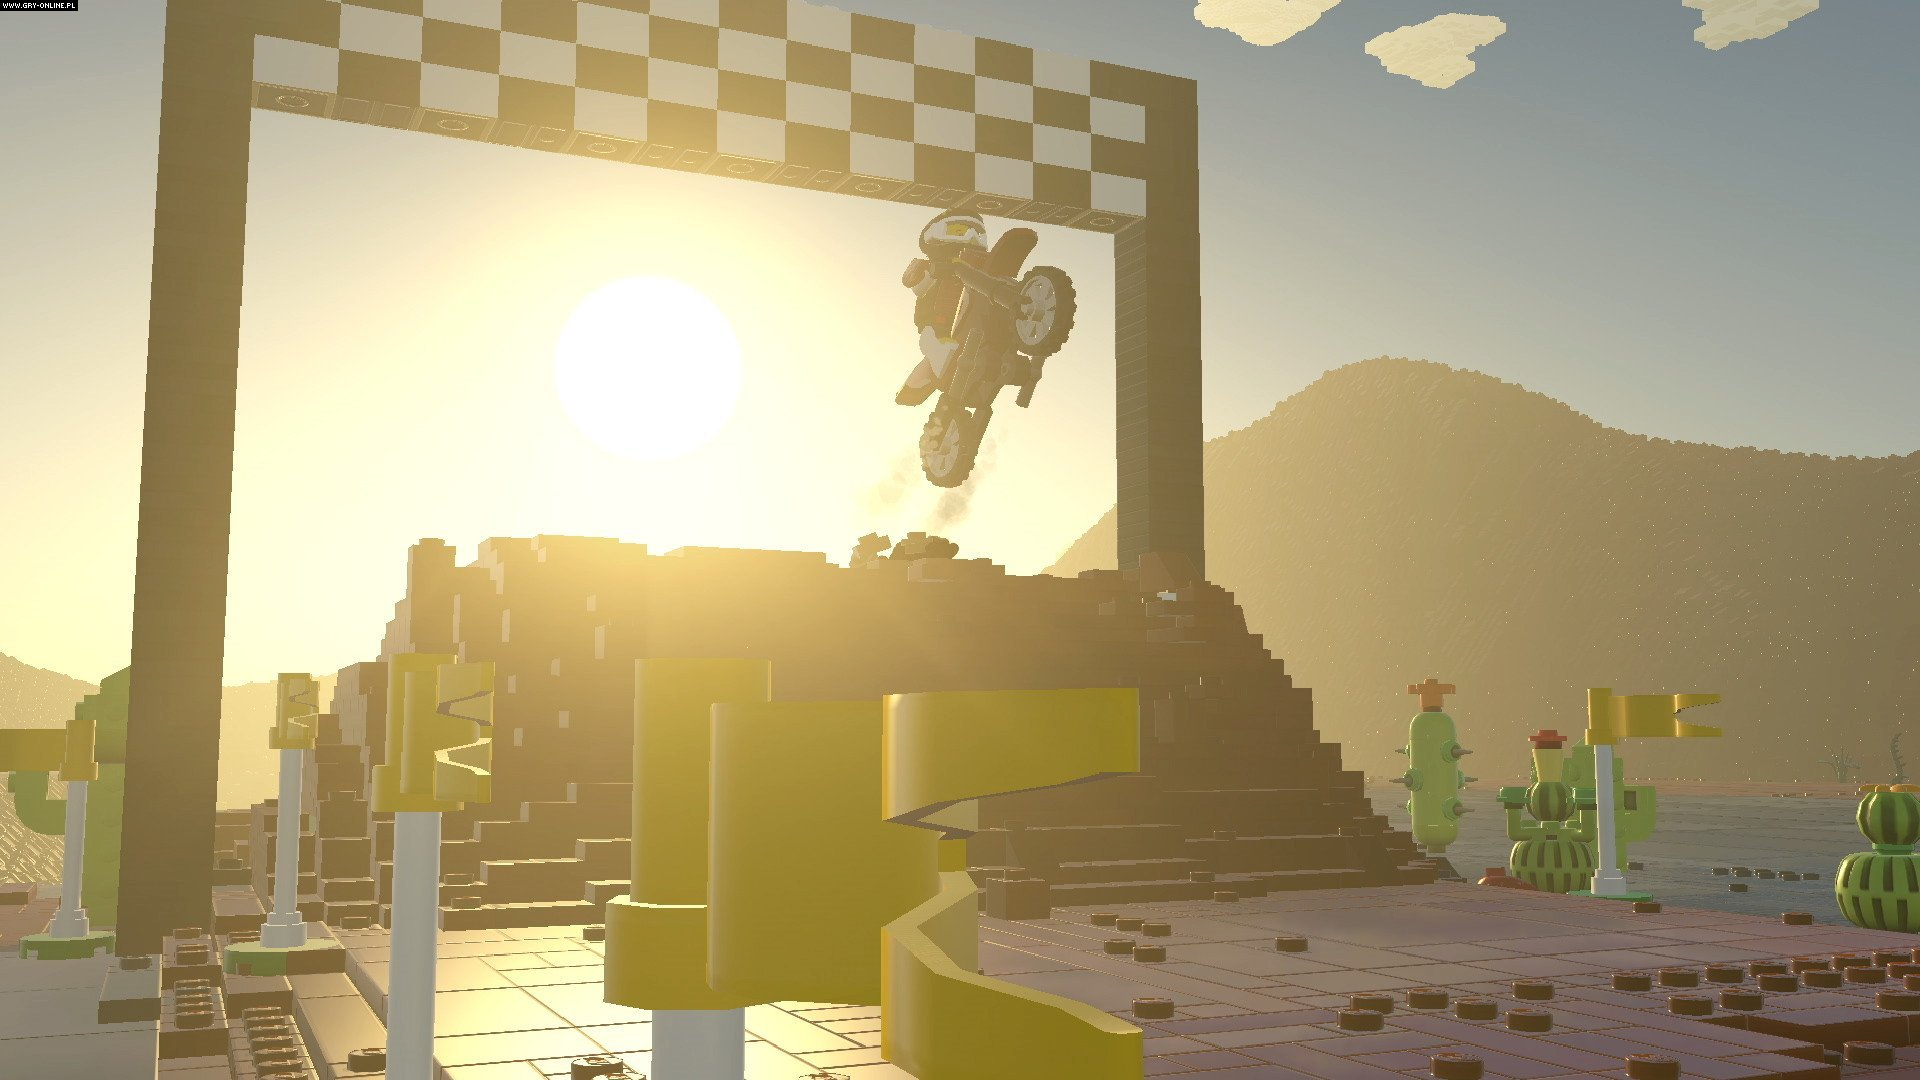 LEGO Worlds PC, PS4, XONE Games Image 4/21, Traveller's Tales, Warner Bros. Interactive Entertainment